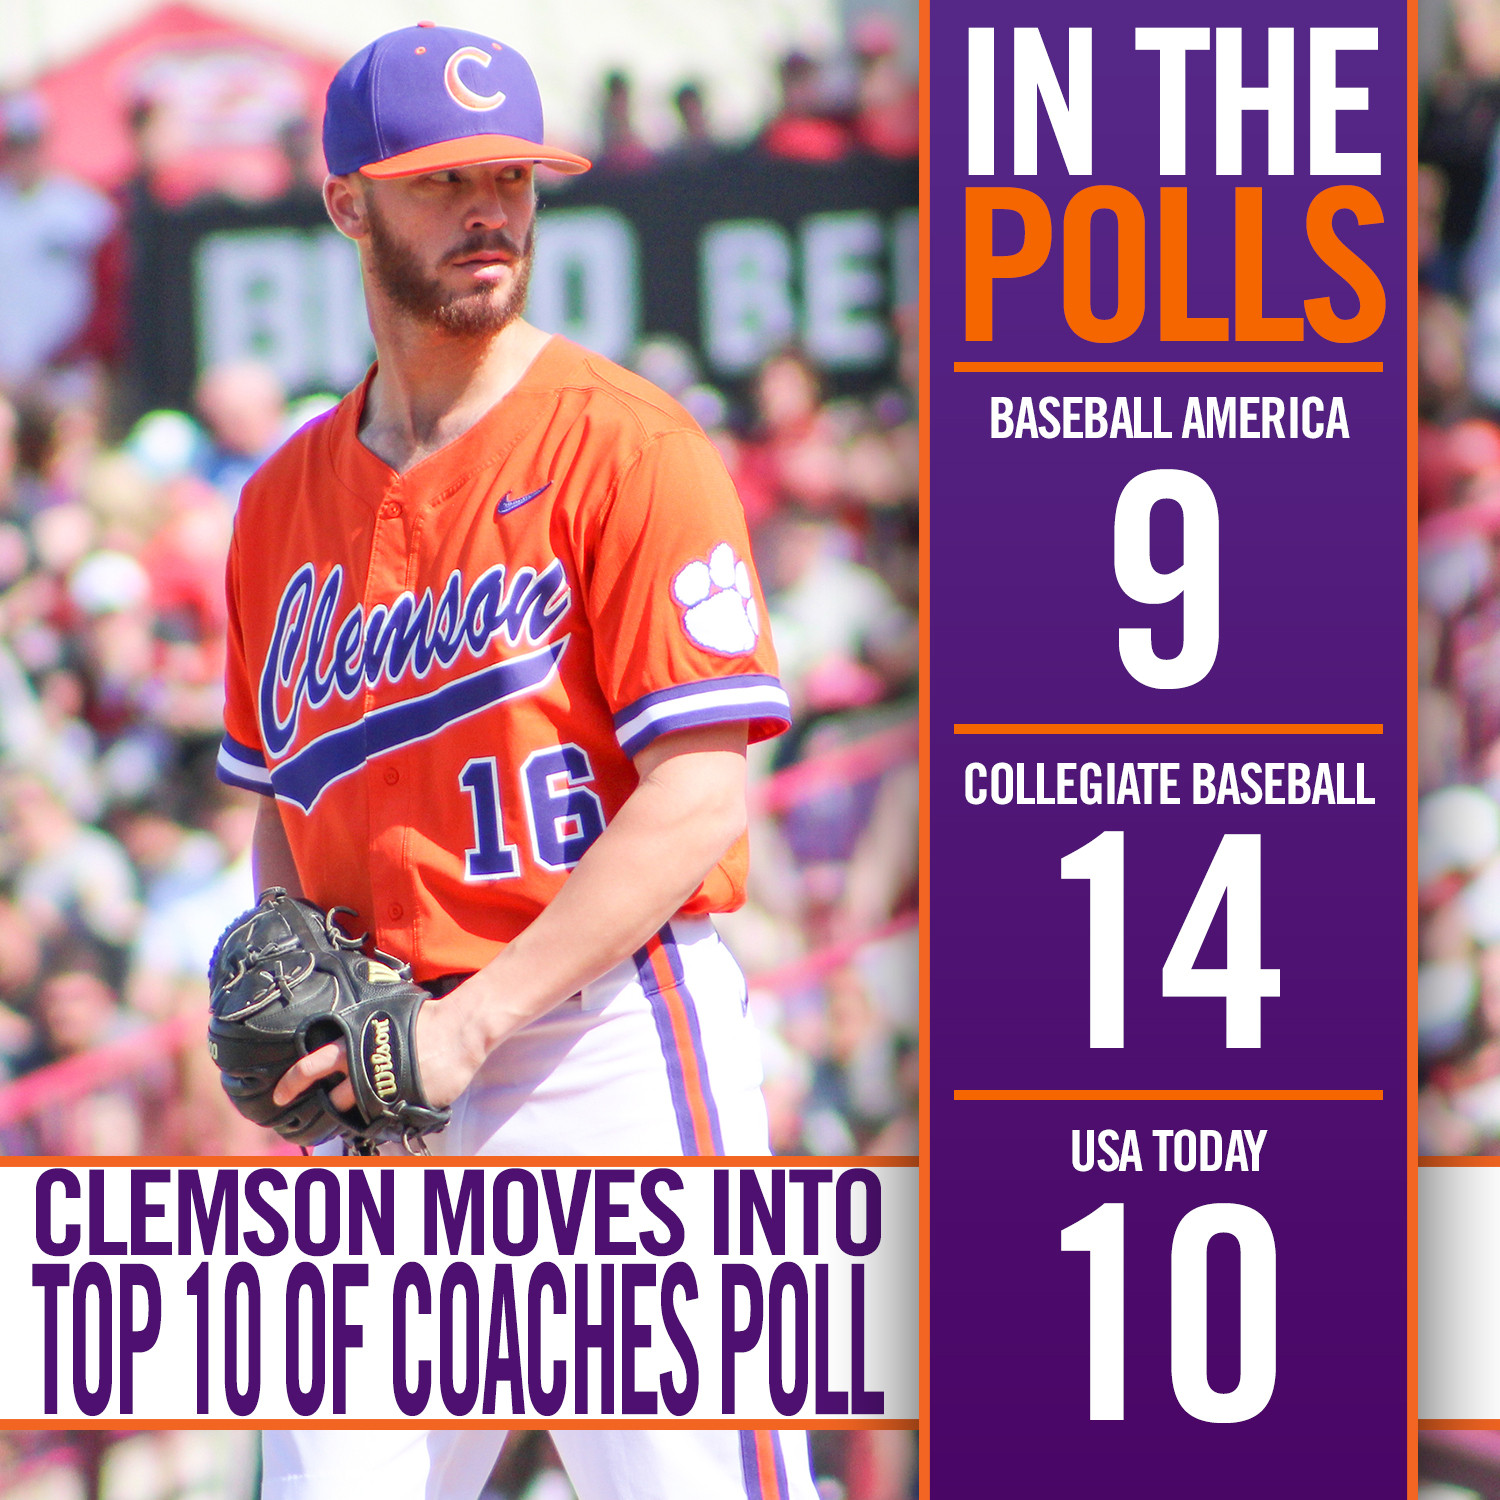 Tigers Remain Strong in Polls